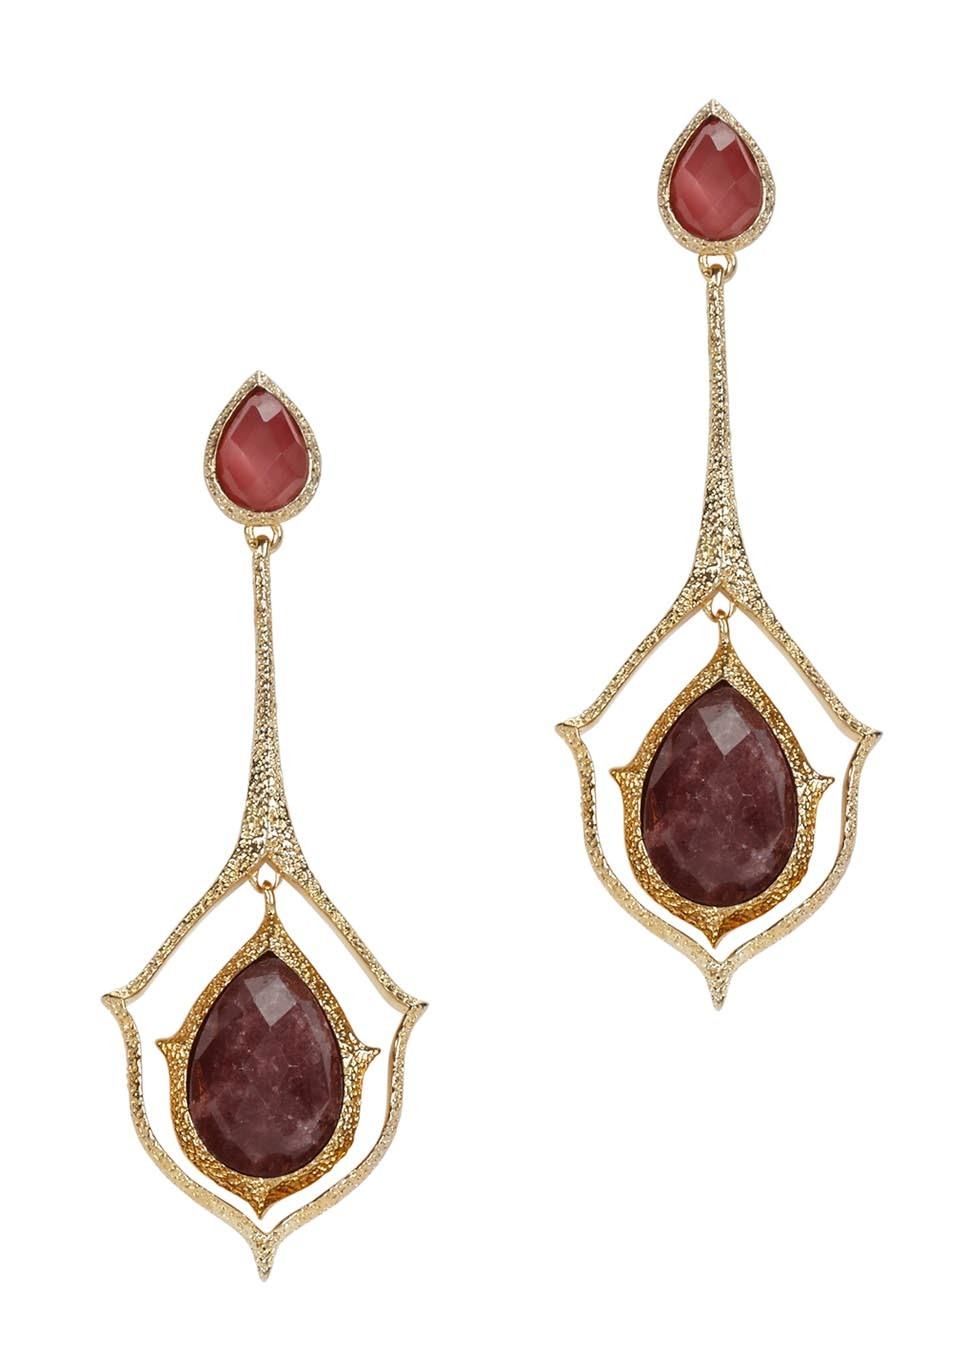 Abstract Mughal Gold Plated Drop Earrings - secondary colour: burgundy; predominant colour: gold; occasions: evening, occasion; style: drop; length: long; size: standard; material: chain/metal; fastening: pierced; finish: metallic; embellishment: jewels/stone; season: a/w 2016; wardrobe: event